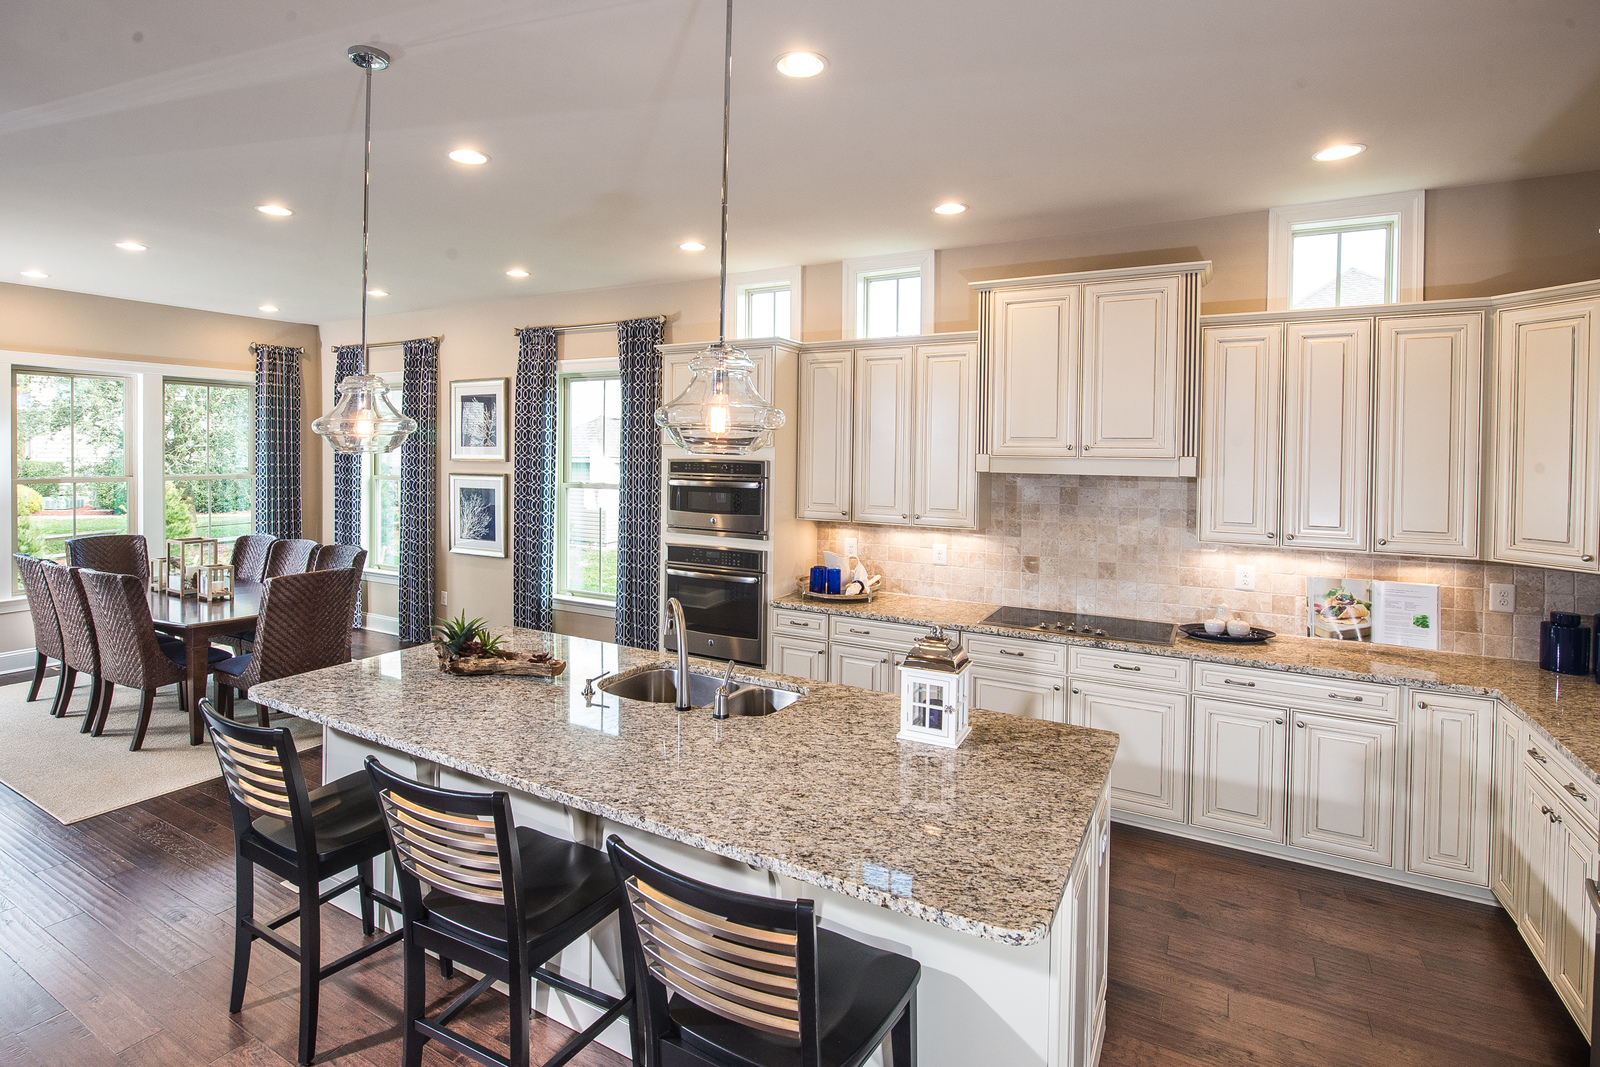 New cavanaugh home model for sale heartland homes for New model kitchen images